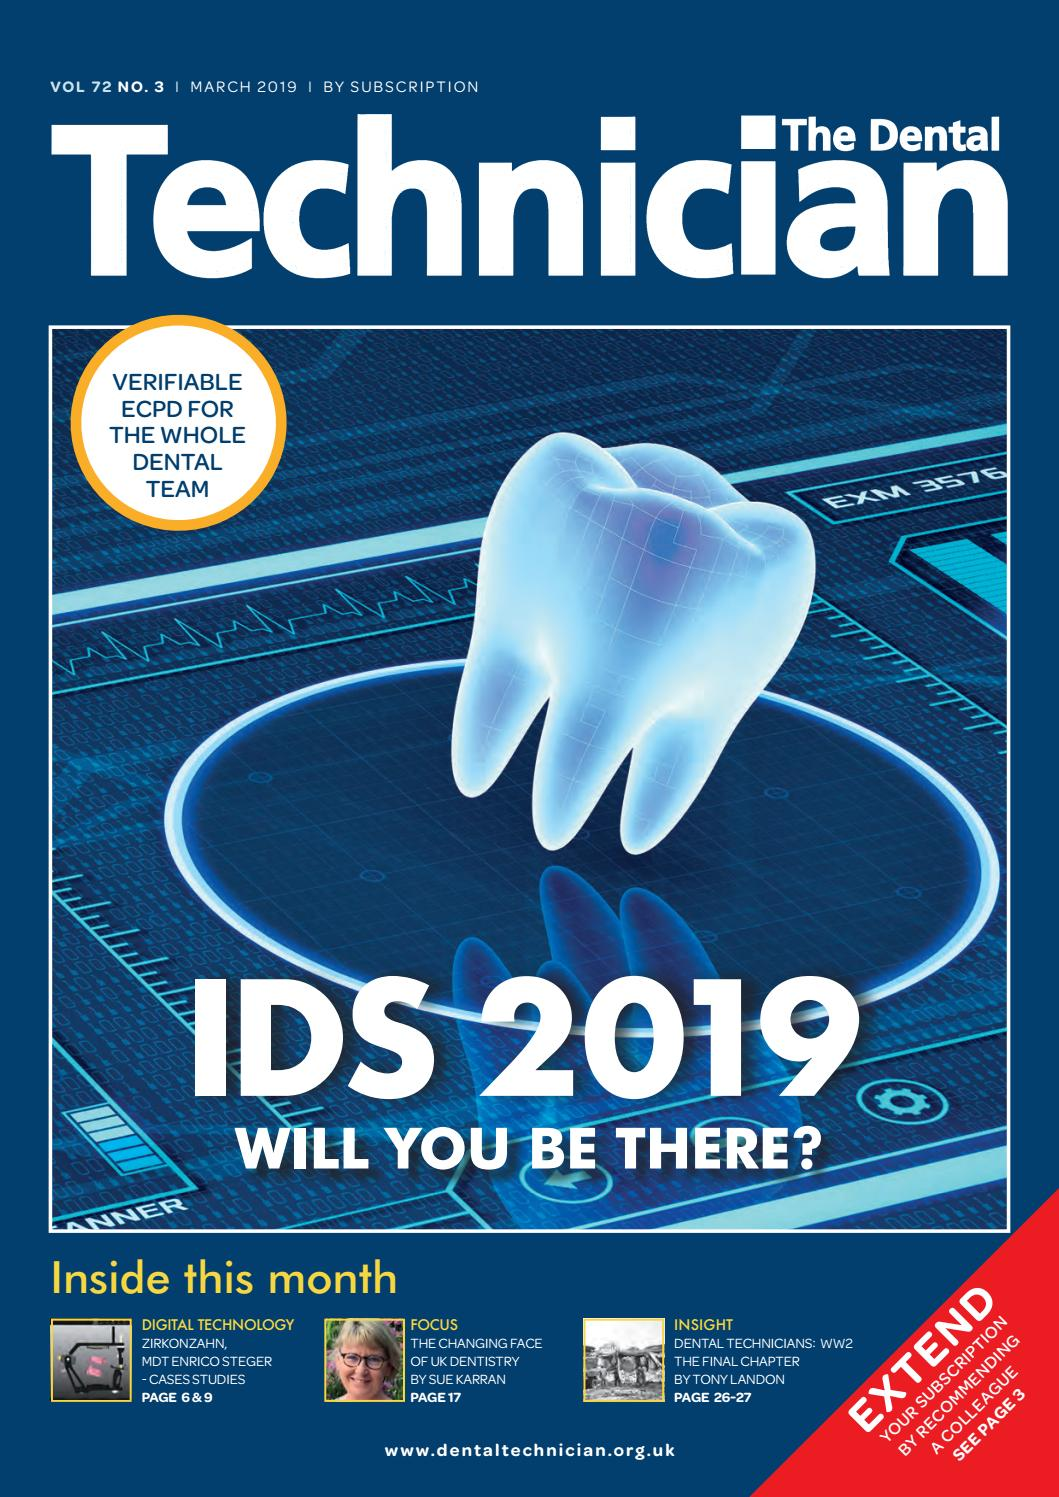 The Dental Technician Magazine March 2019 by The Dental